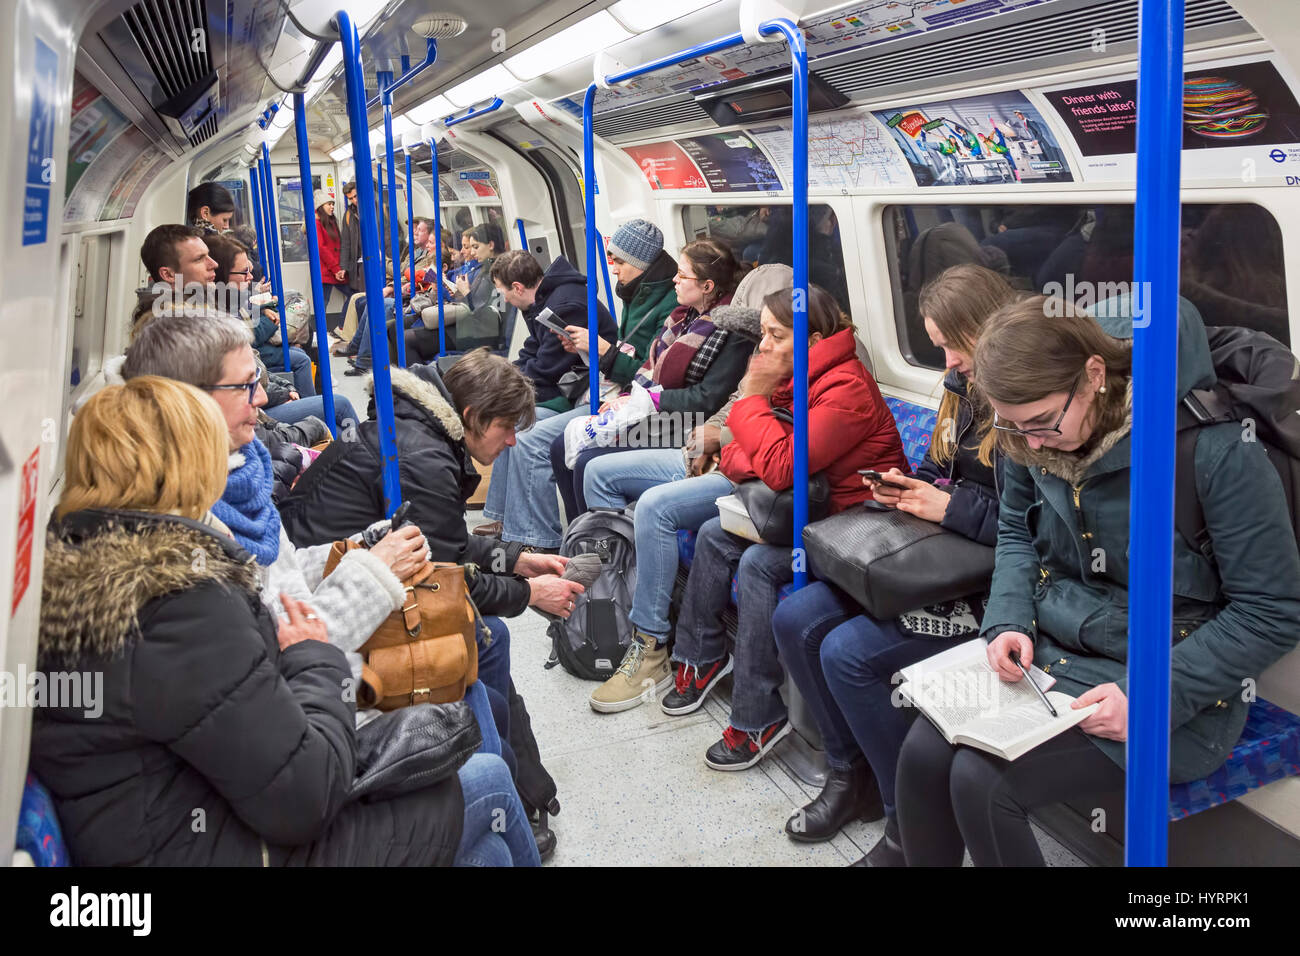 Passengers on London Underground Tube system, England, UK - Stock Image